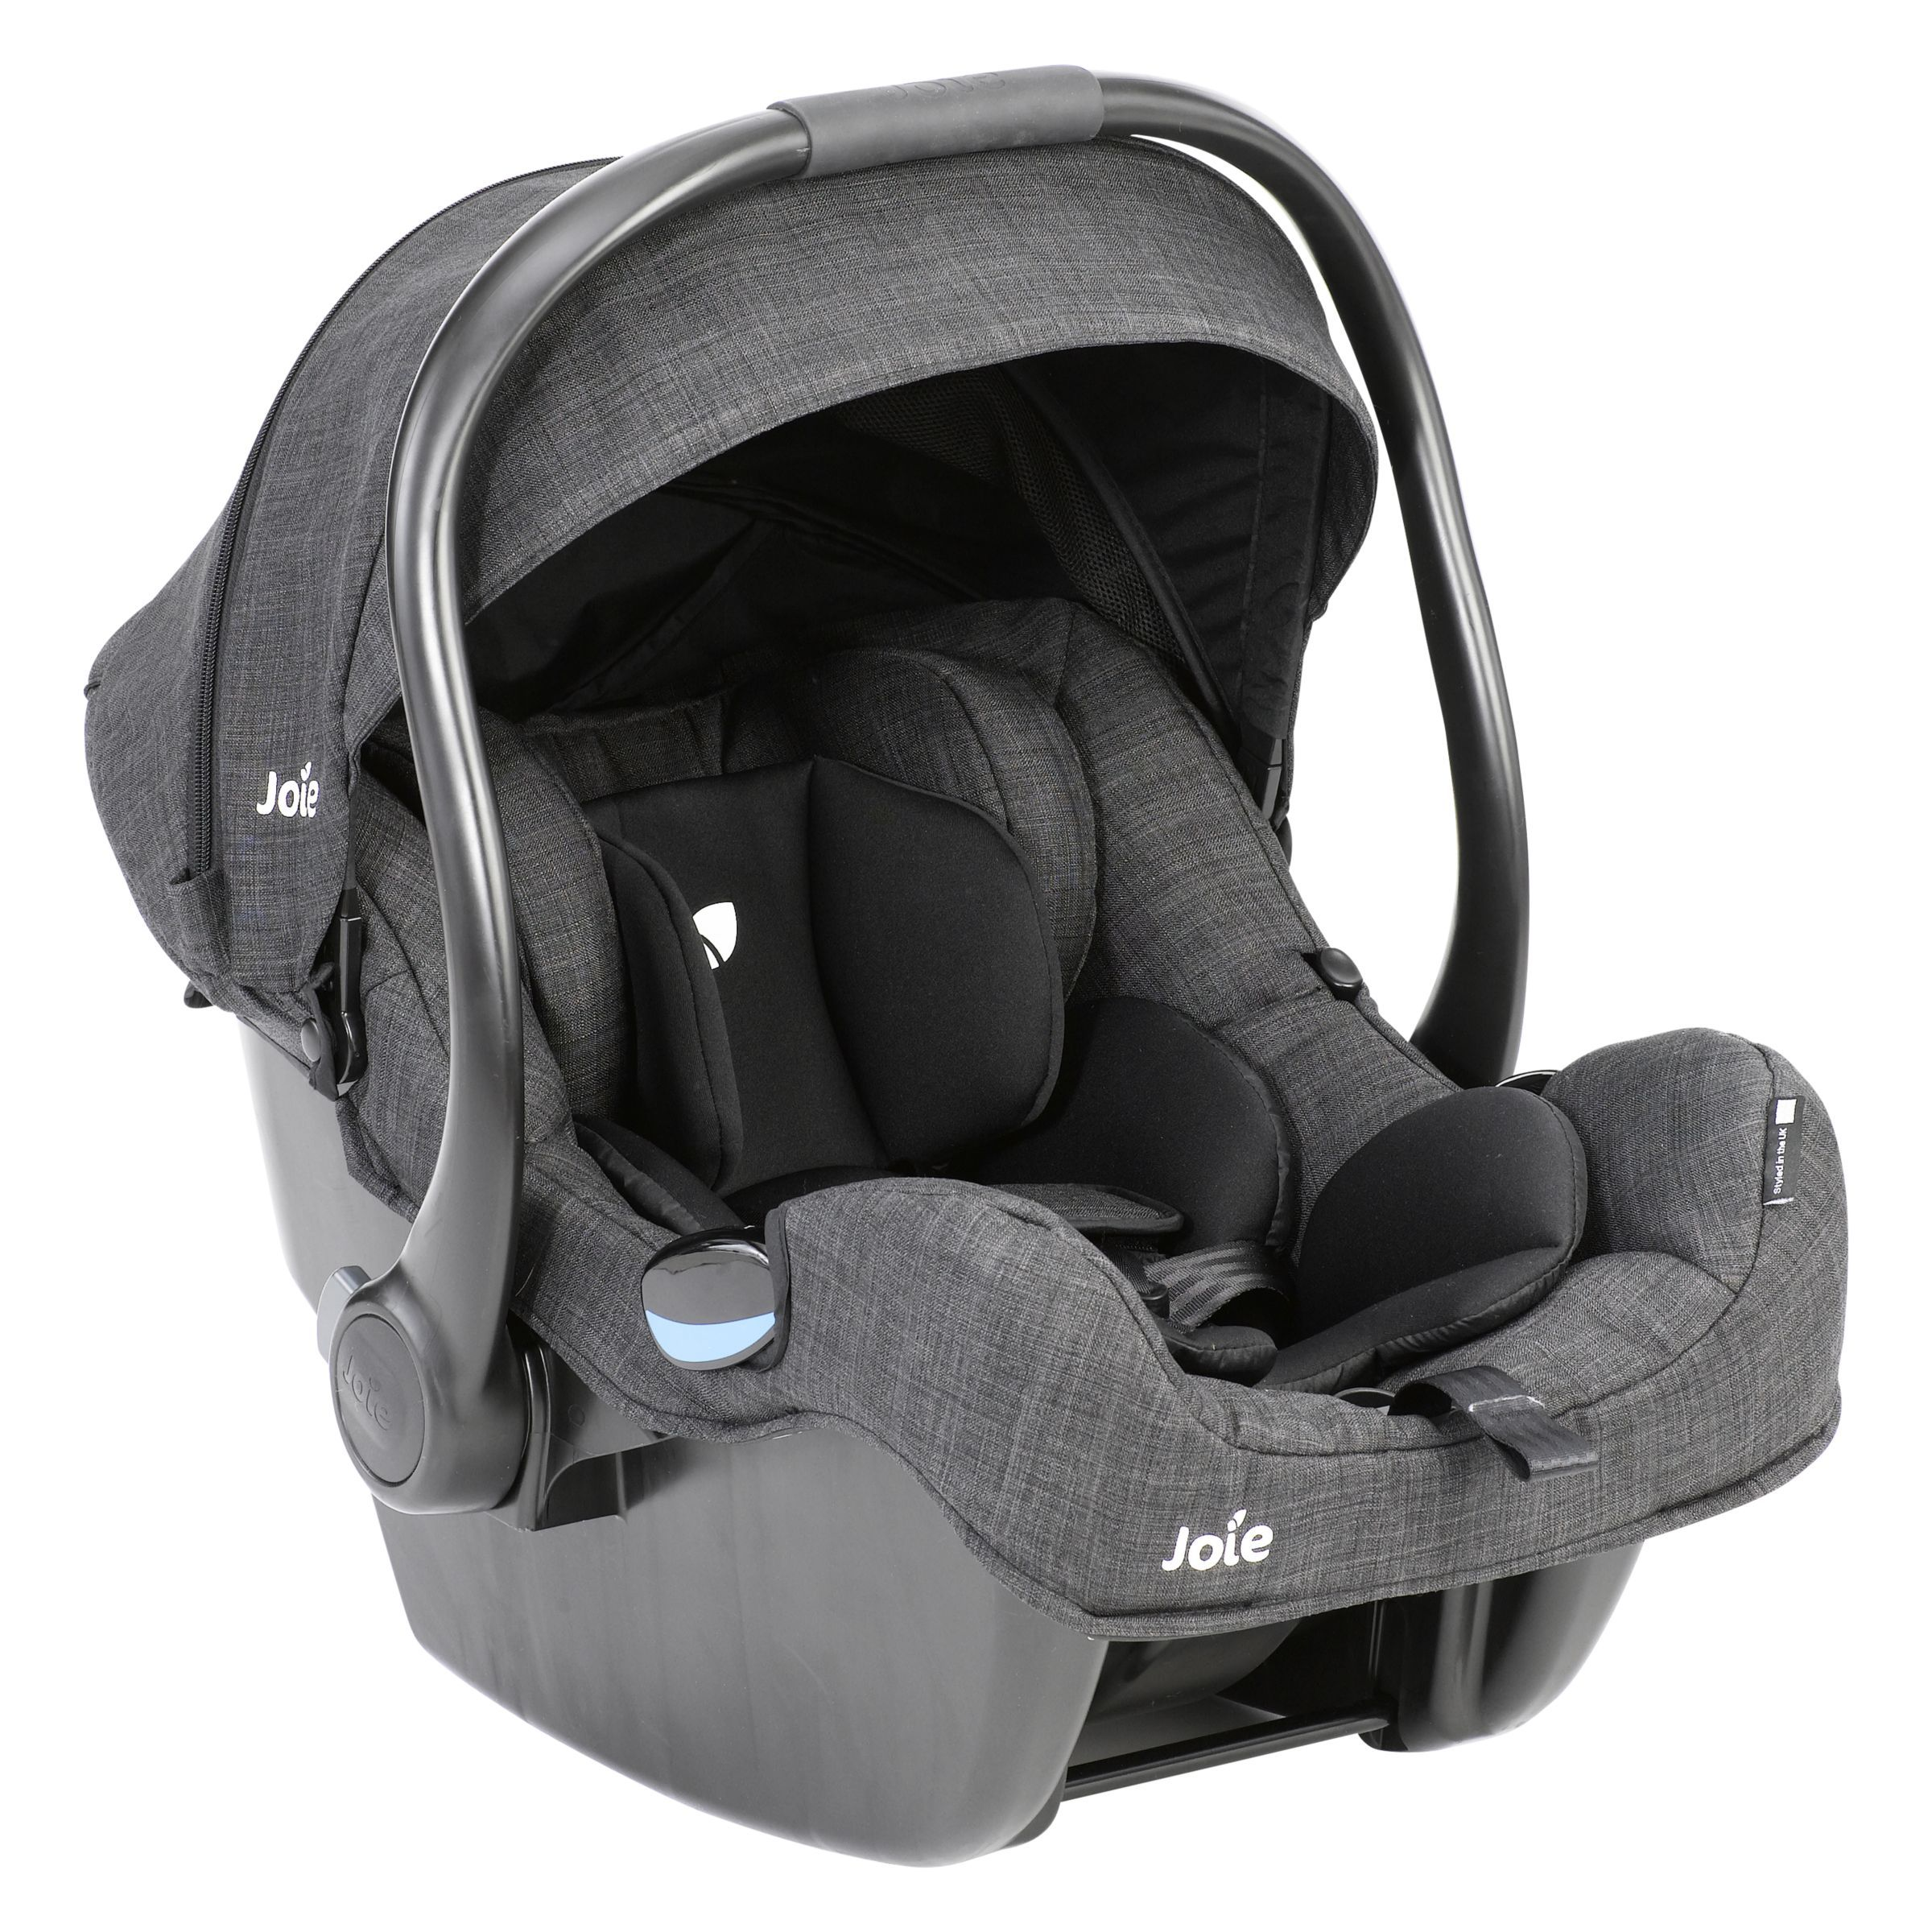 Joie Baby iGemm Group 0+ Baby Car Seat, Pavement Grey